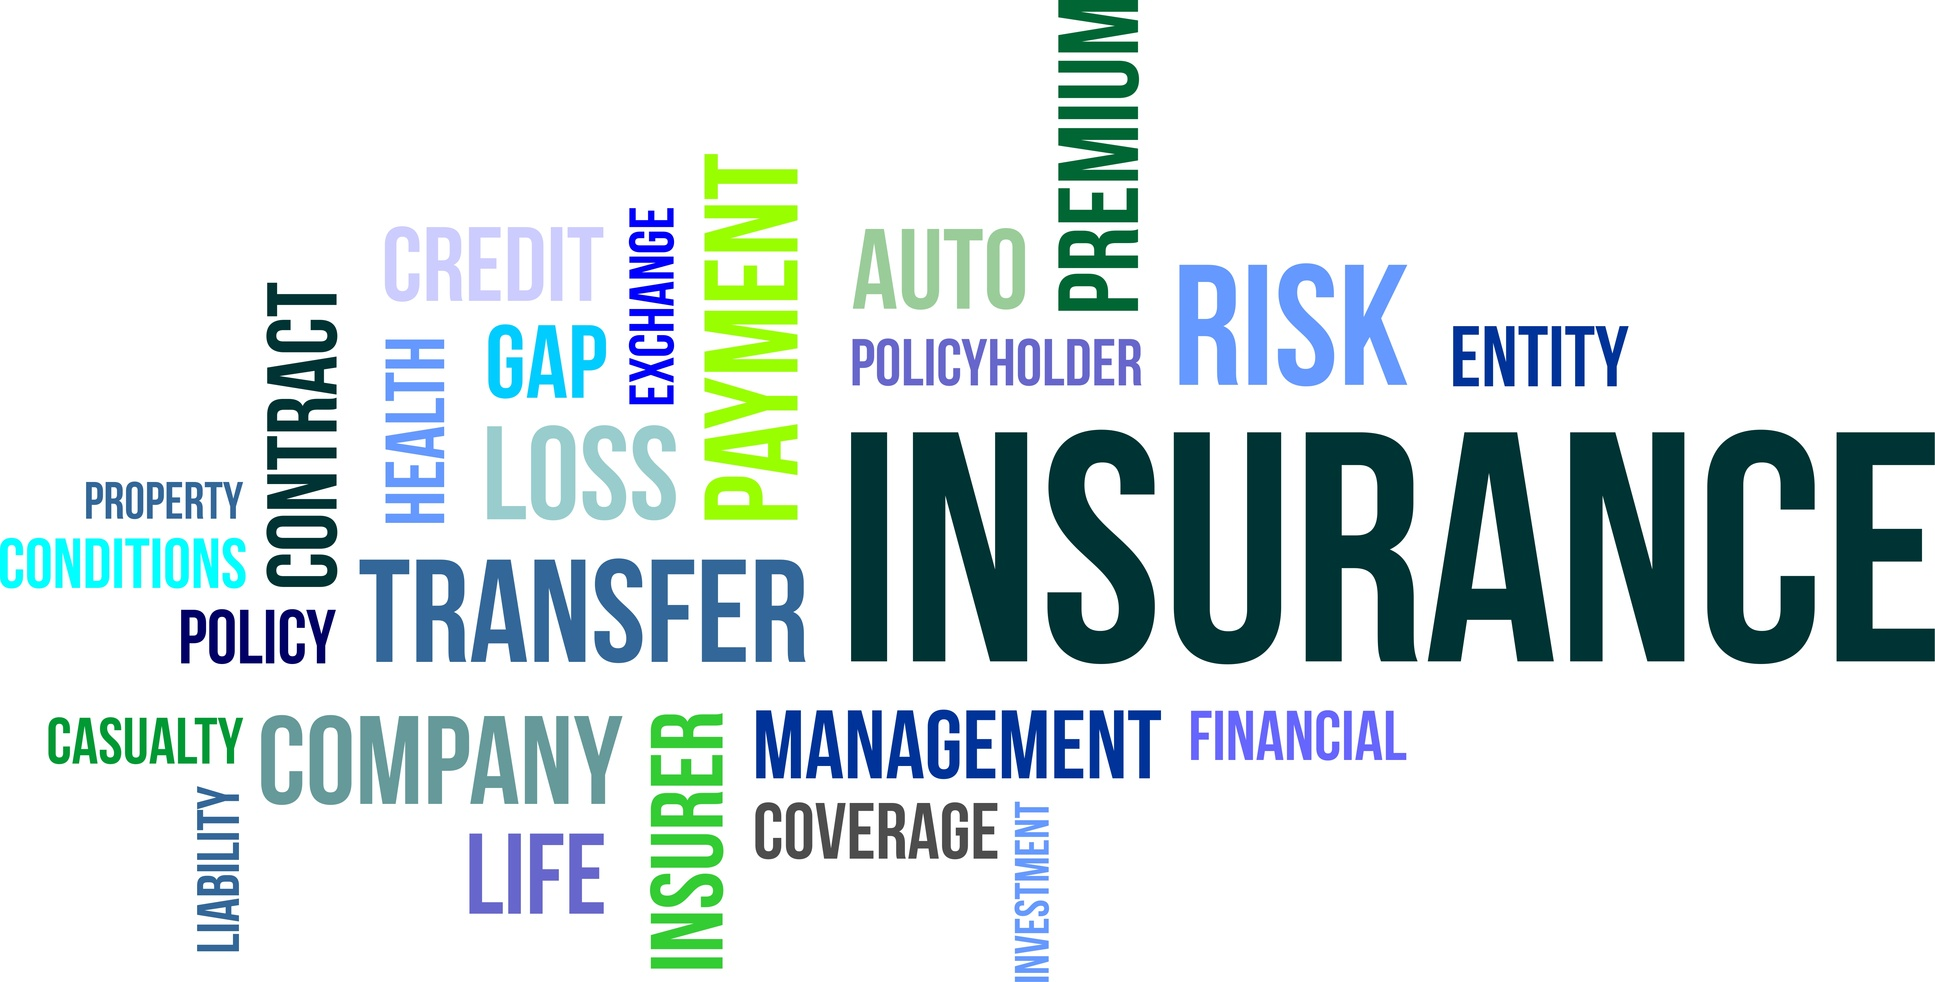 Gap Insurance For New Car Purchase